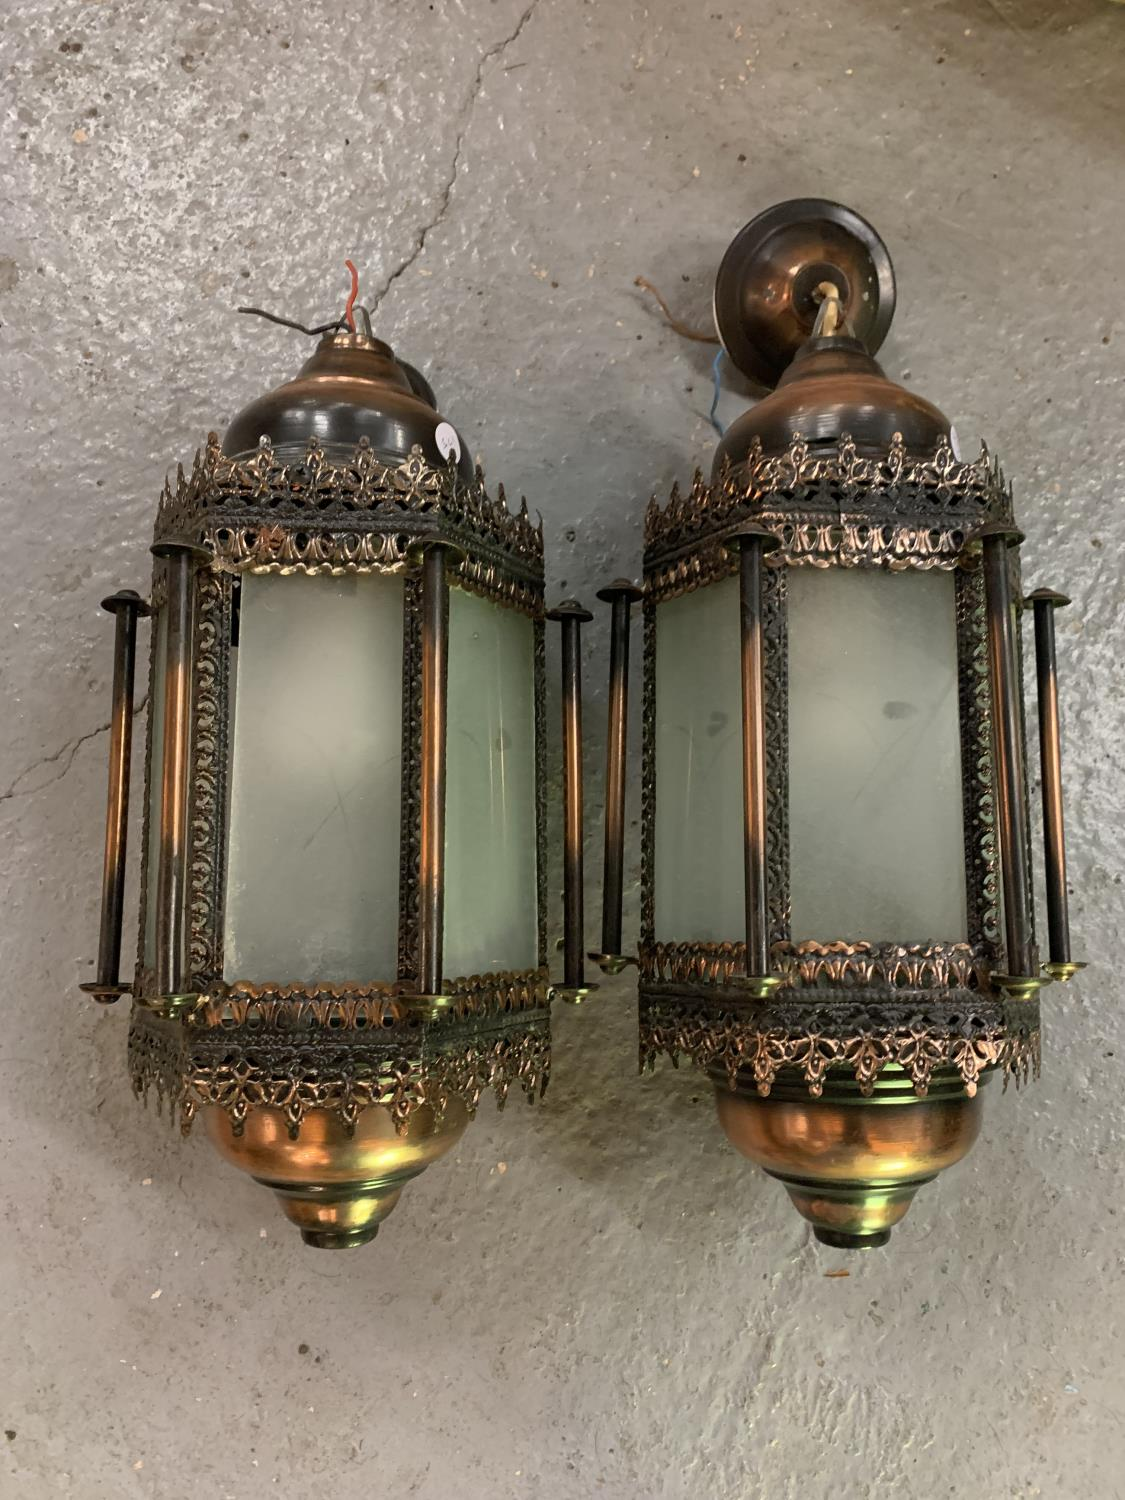 TWO MORROCAN STYLE LIGHTS WITH GLASS PANELS - Image 2 of 6